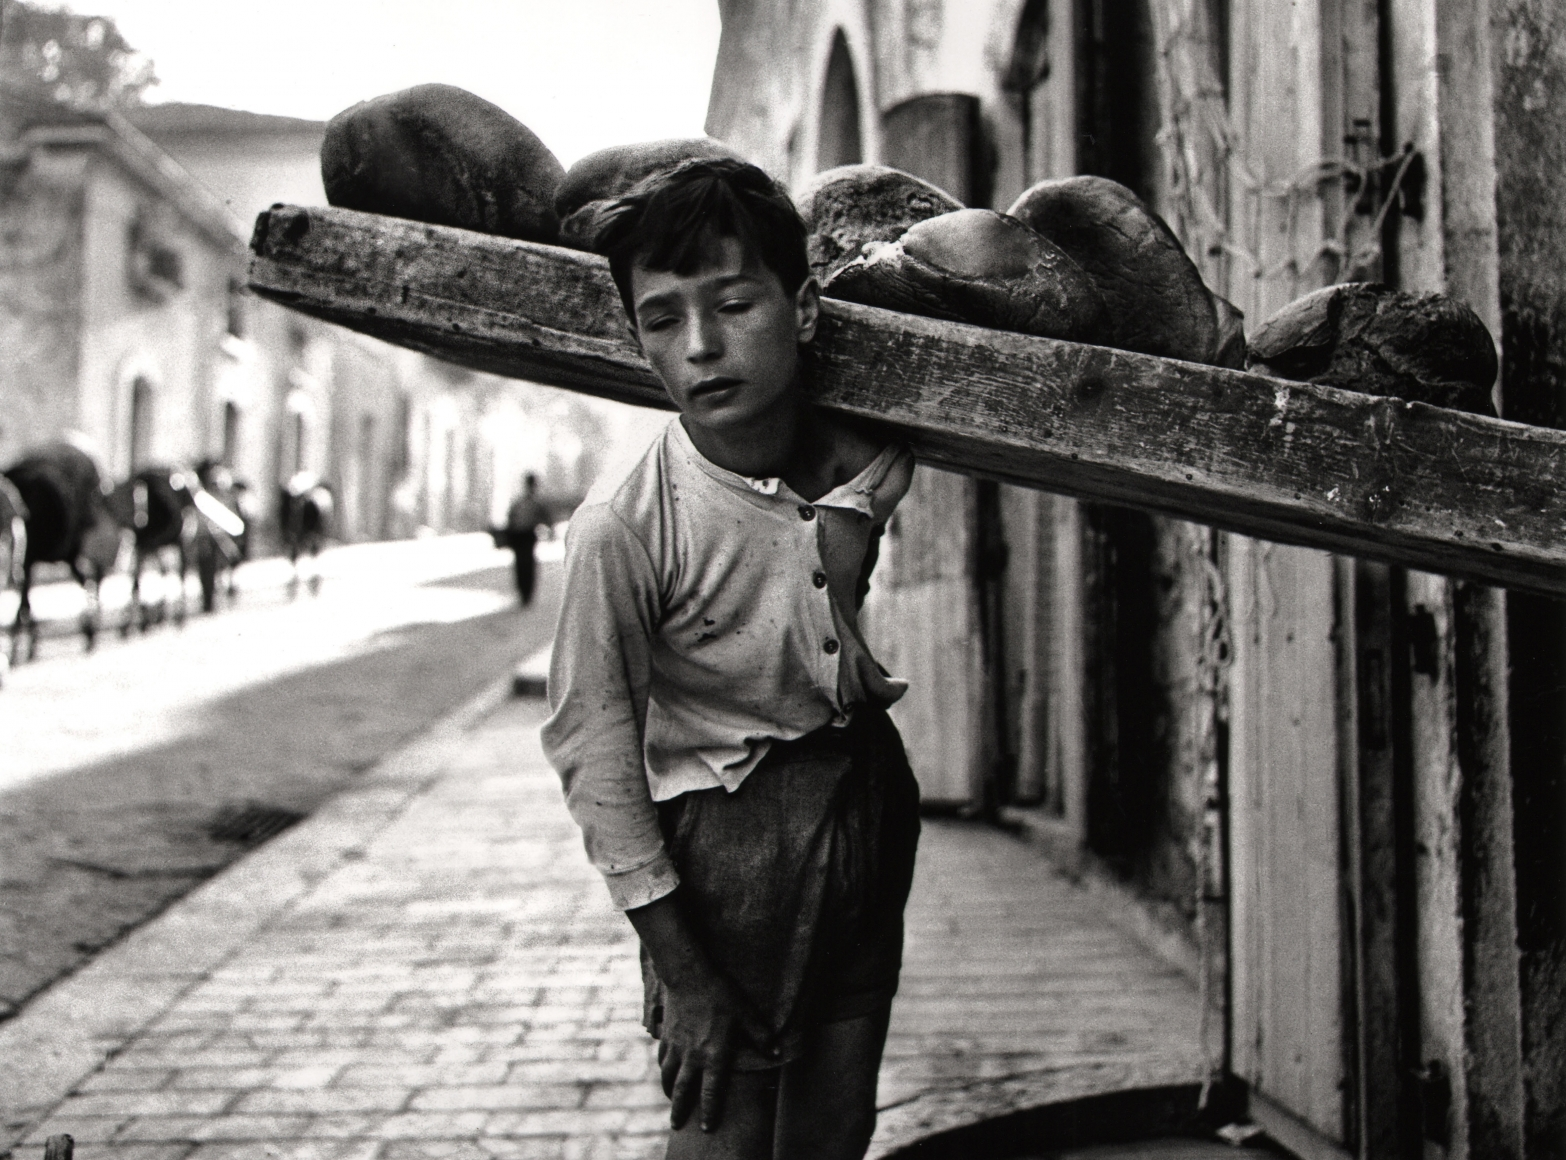 Nino Migliori, Bread Carrier, 1956. A boy carries bread on a wooden plank on his left shoulder.